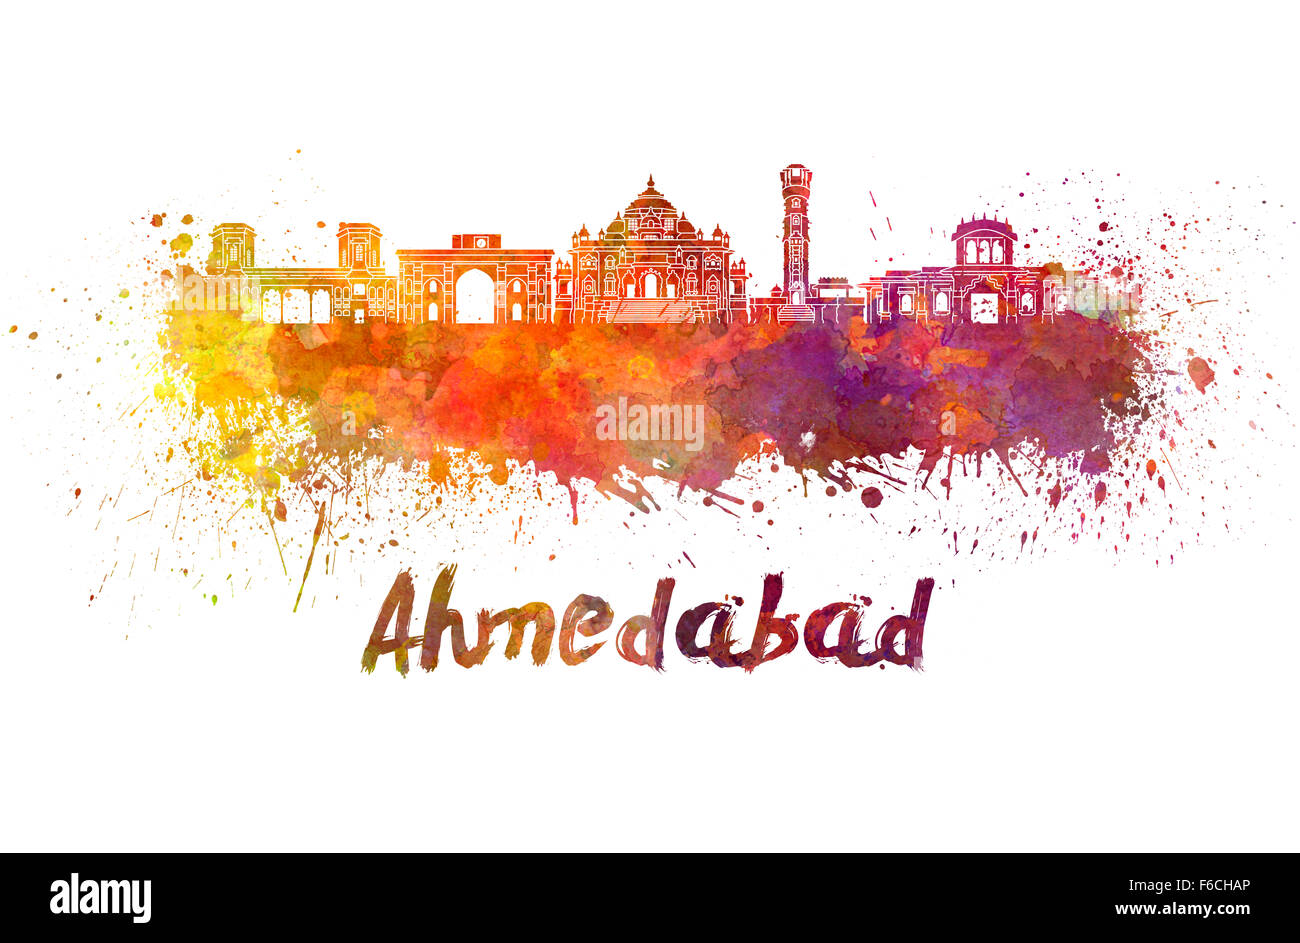 Ahmedabad skyline in watercolor splatters with clipping path - Stock Image